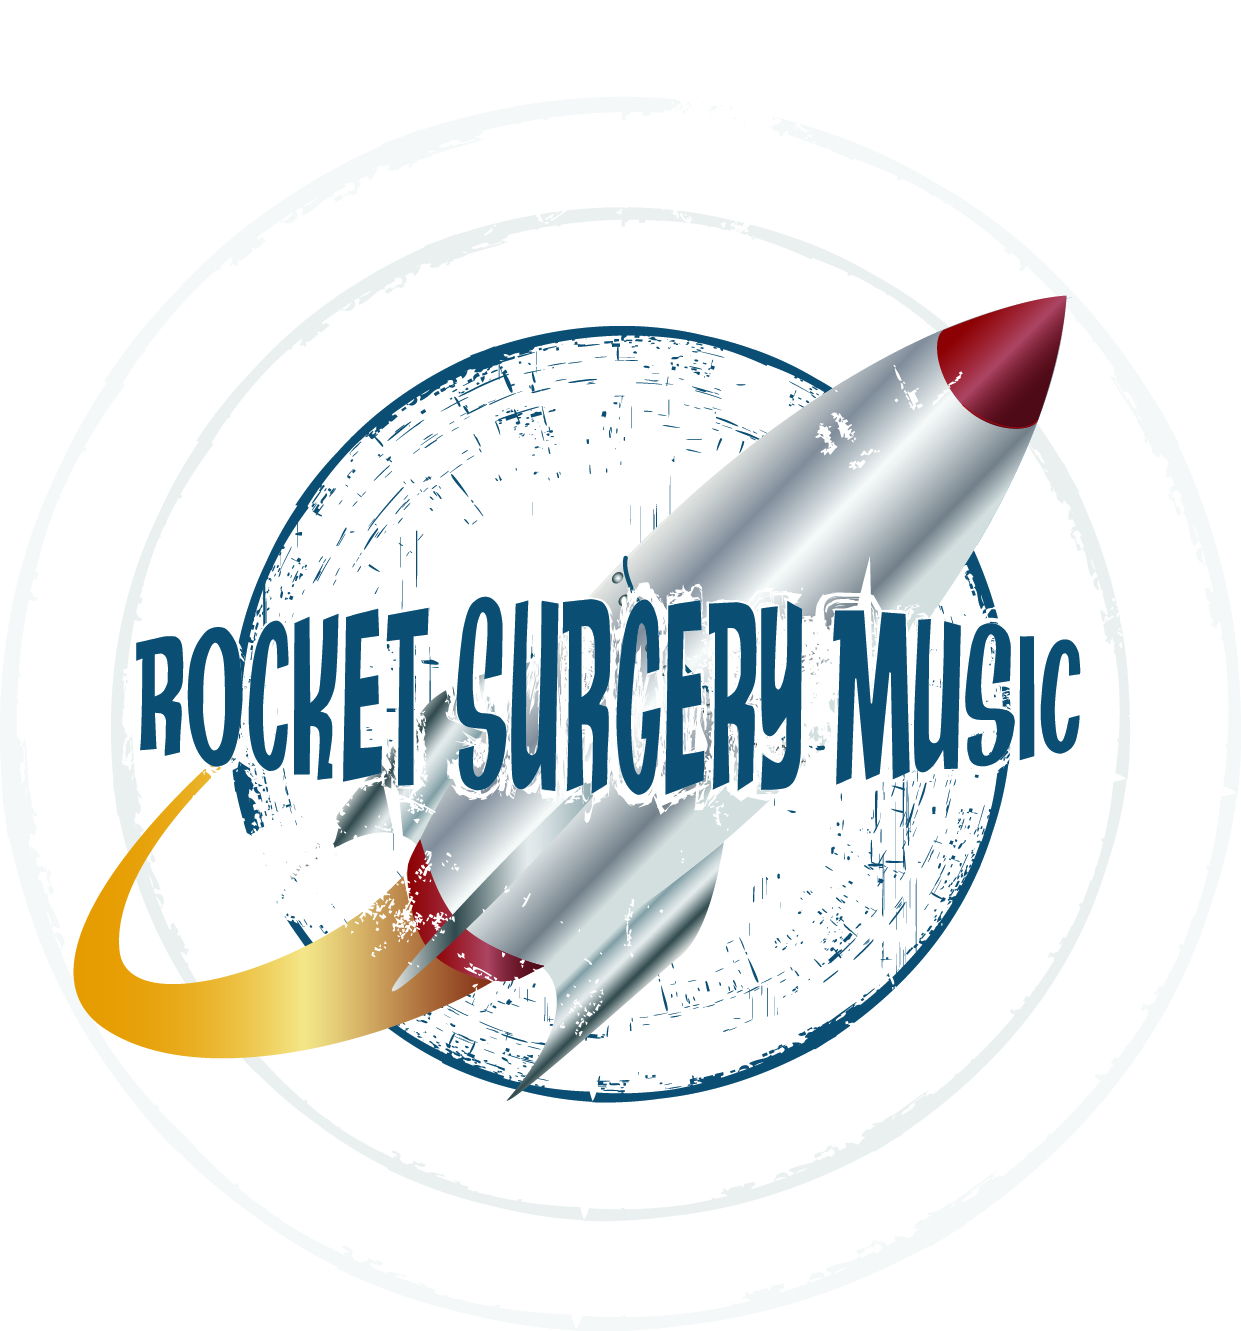 Welcome to Rocket Surgery Music